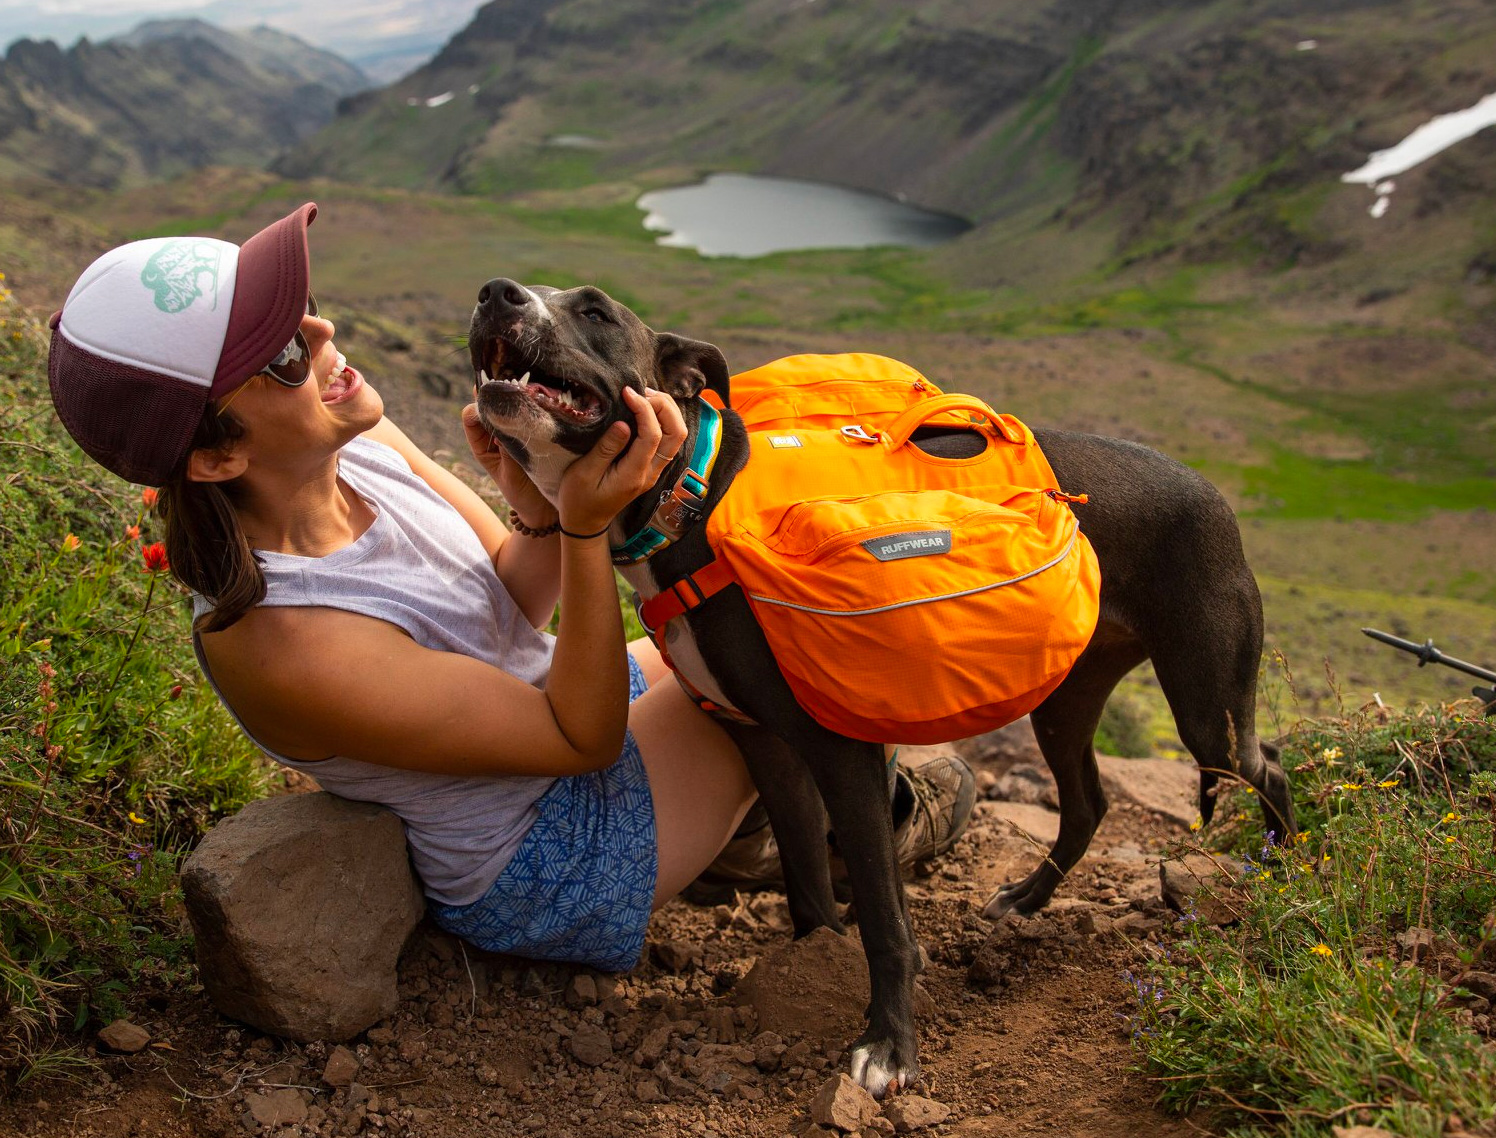 Equip Your Pup To Hike Like A Pro at werd.com